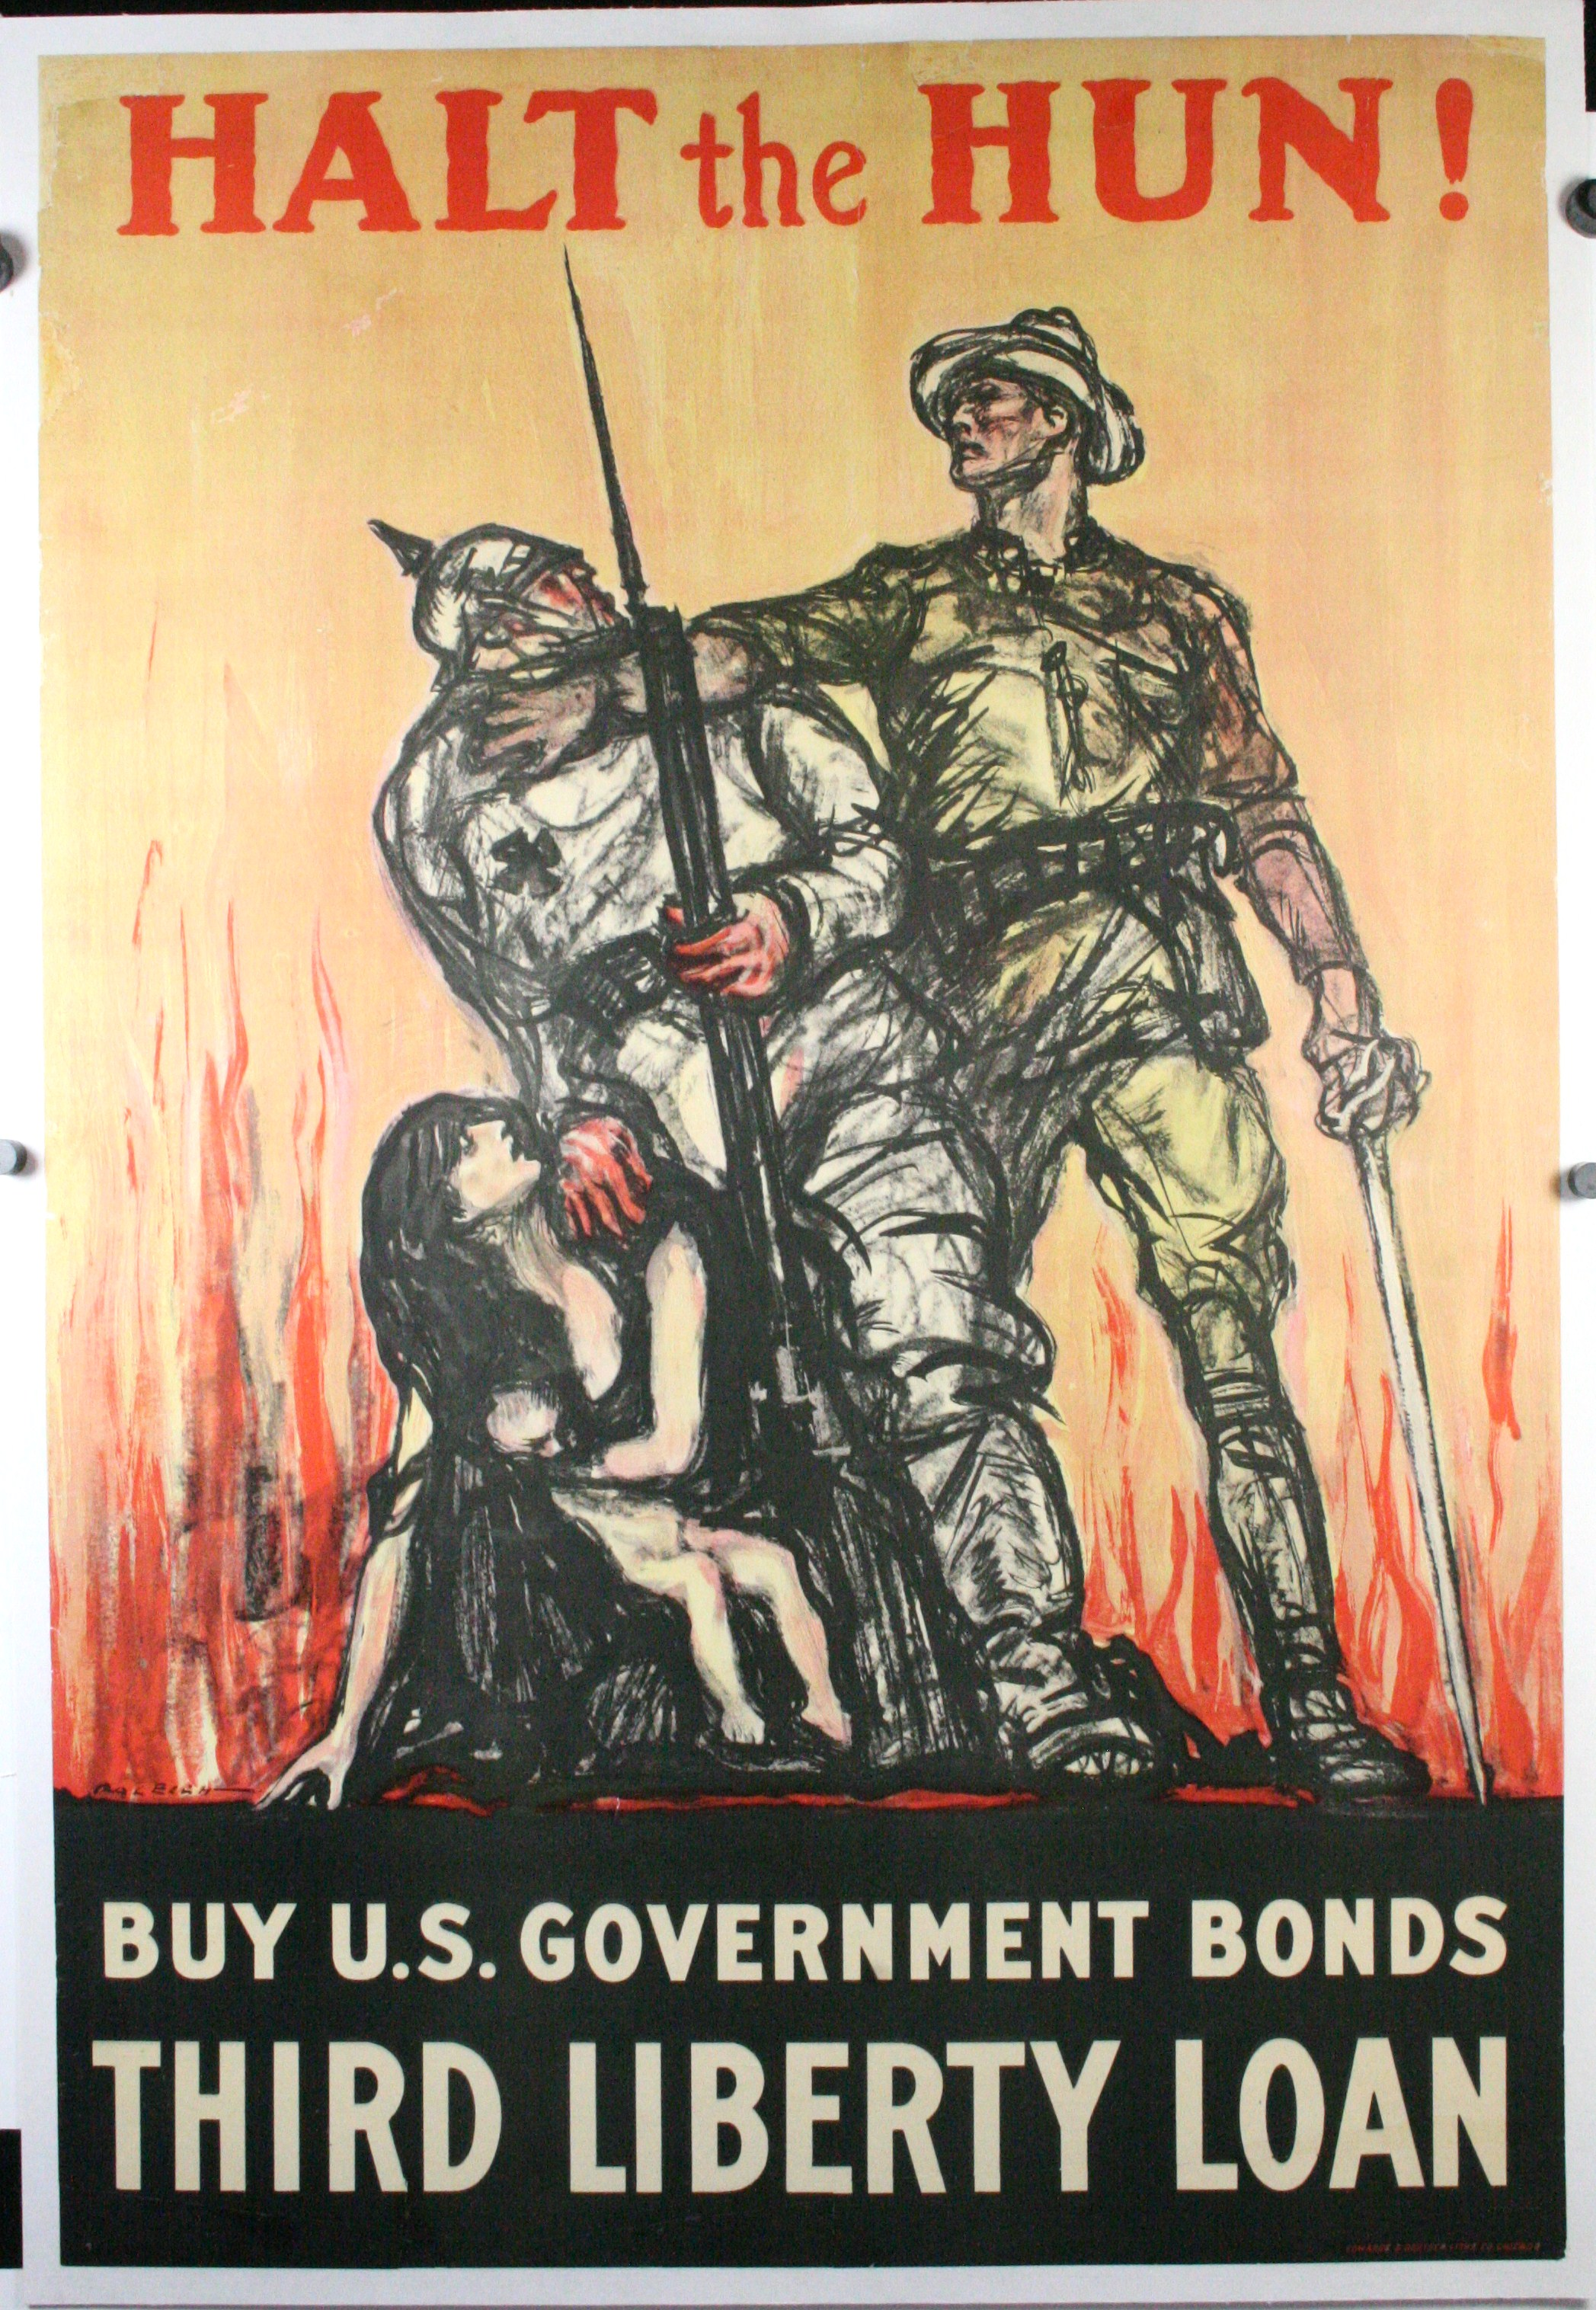 wwi propaganda Use this activity while teaching about world war one, propaganda, or journalism students will discover the nature of wwi propaganda, identify why army officials might have been frustrated with the artists' work, and explore the difficulty in accurately documenting wartime events and conditions.